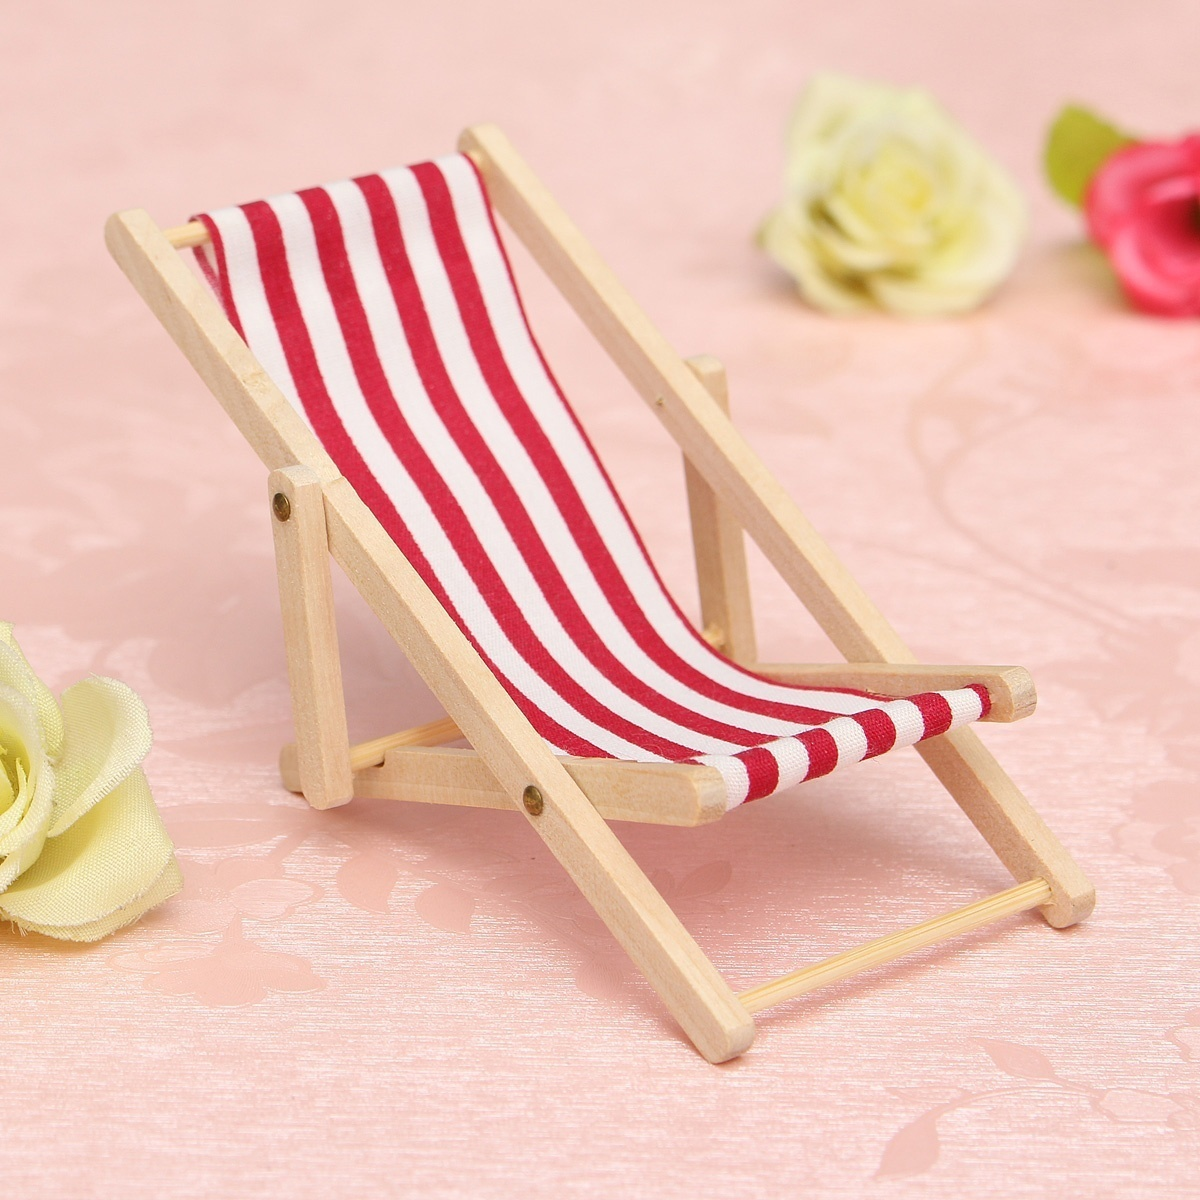 Baby Toys Mini Lounge Chair Simulation Furniture Miniature Food Play Scene Model Little Cloth Dollhouse Accessories